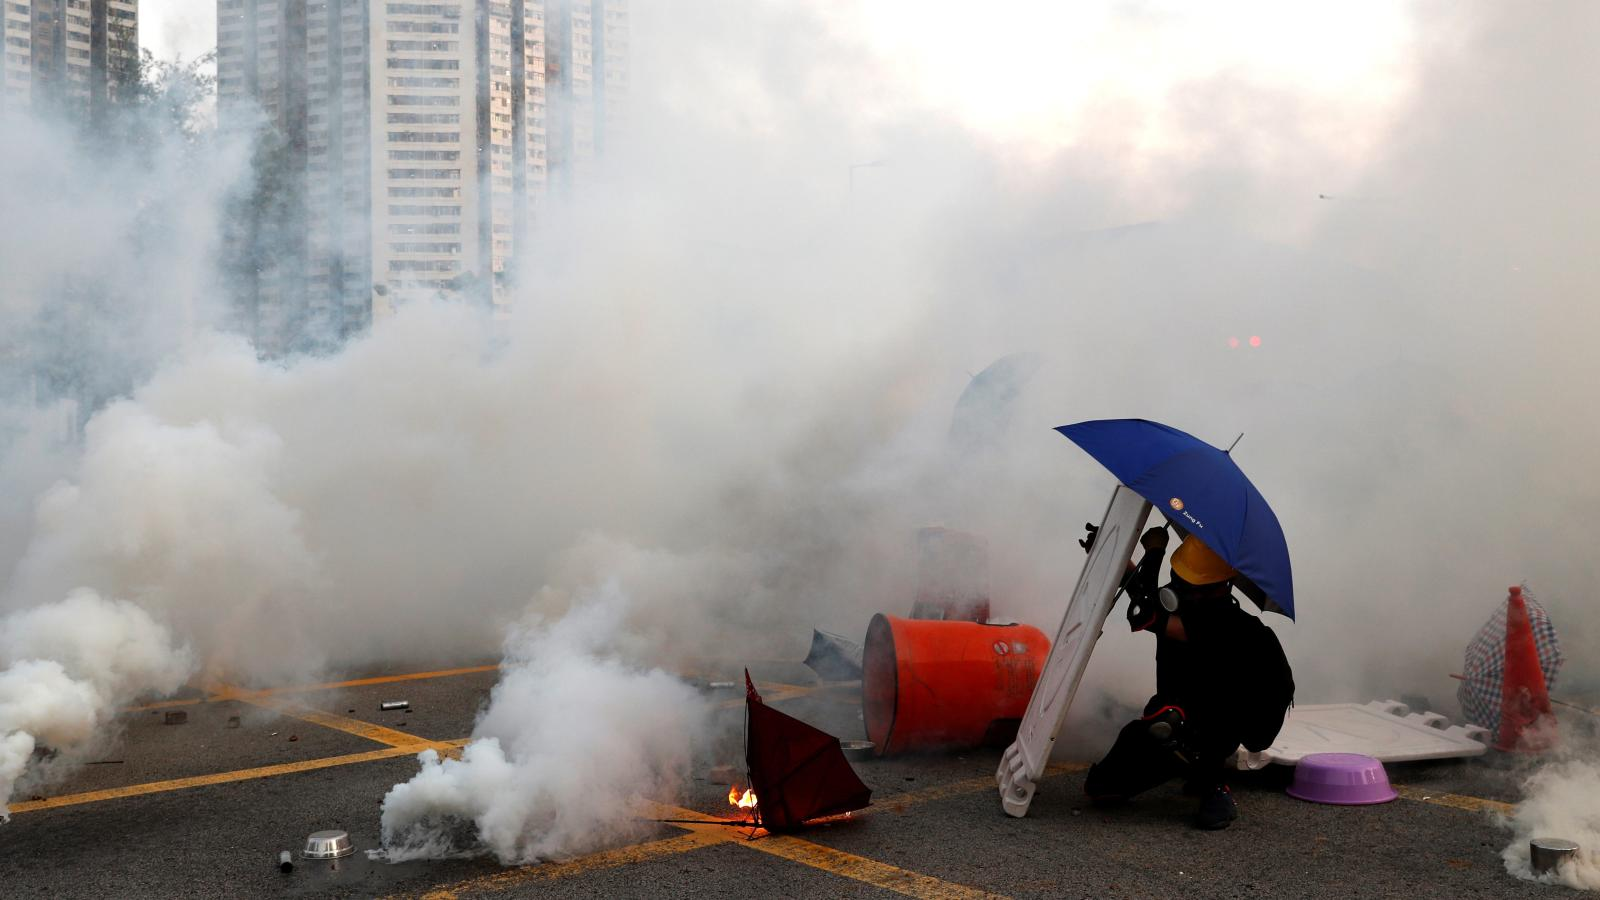 Police have fired a record amount of tear gas in Hong Kong — Quartz